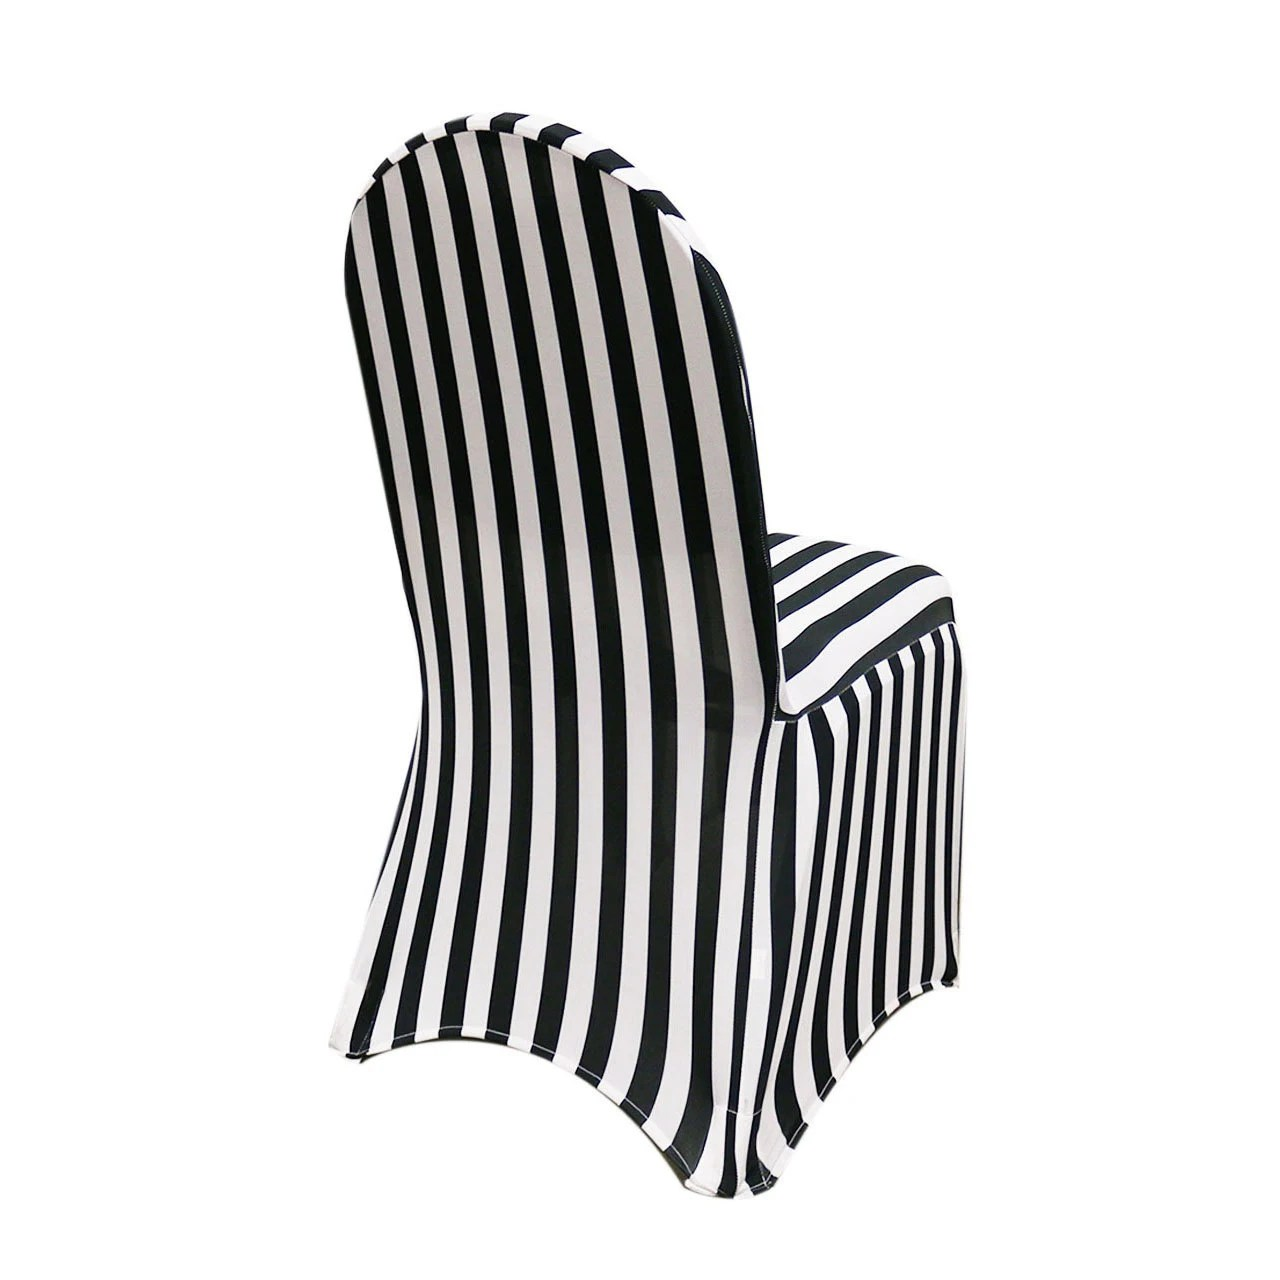 spandex banquet chair covers for sale fabric accent chairs black and white striped cover stretch etsy image 0